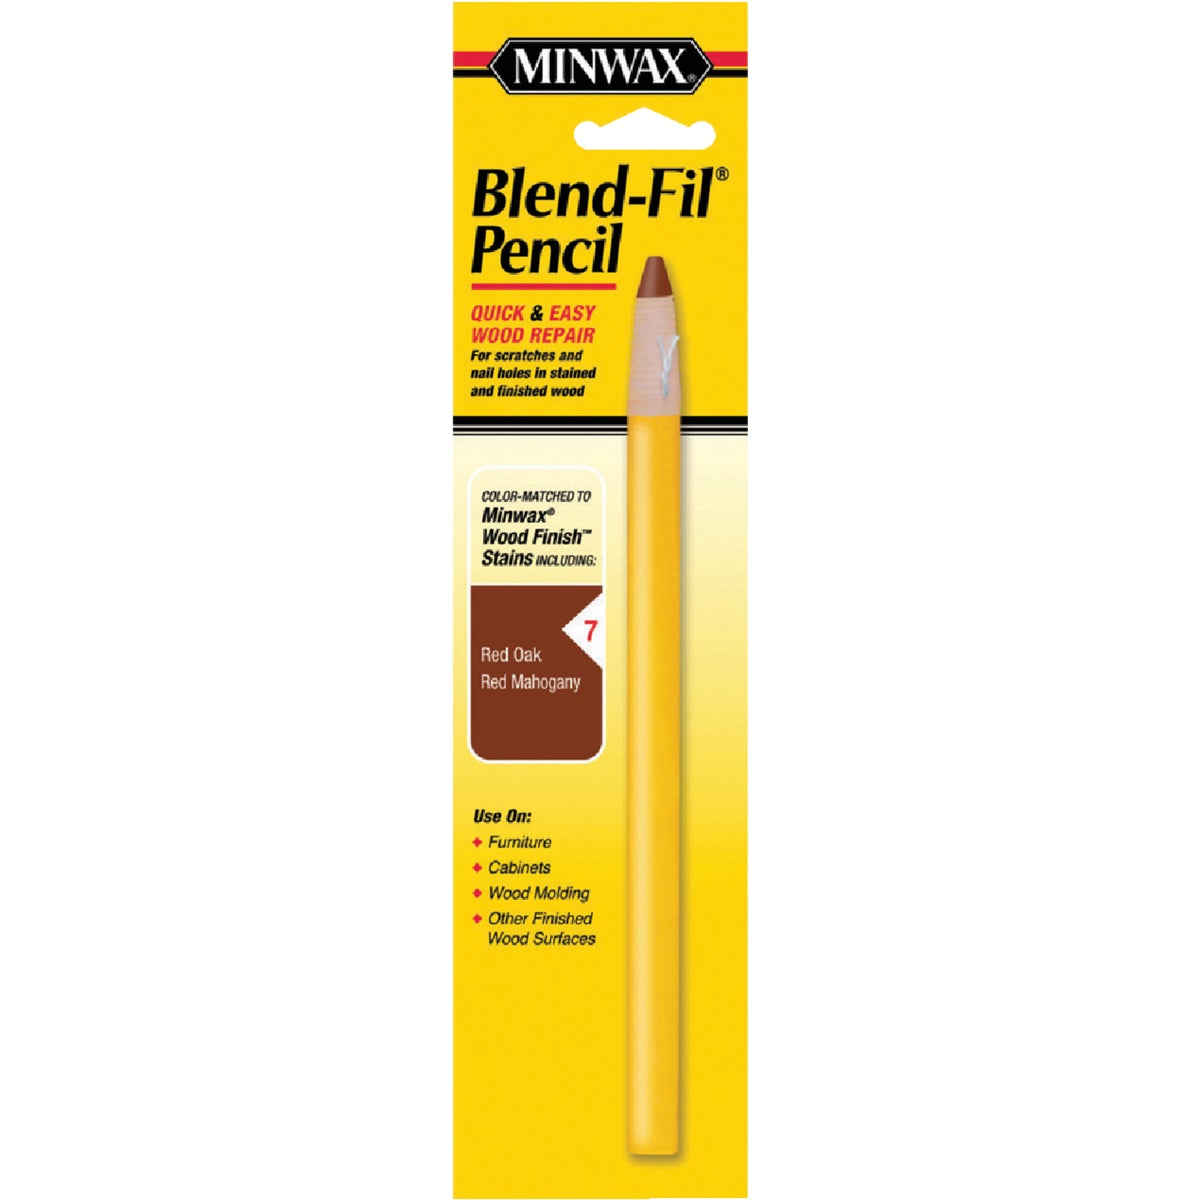 #7 BLEND-FIL PENCIL - 11007 by Minwax Company